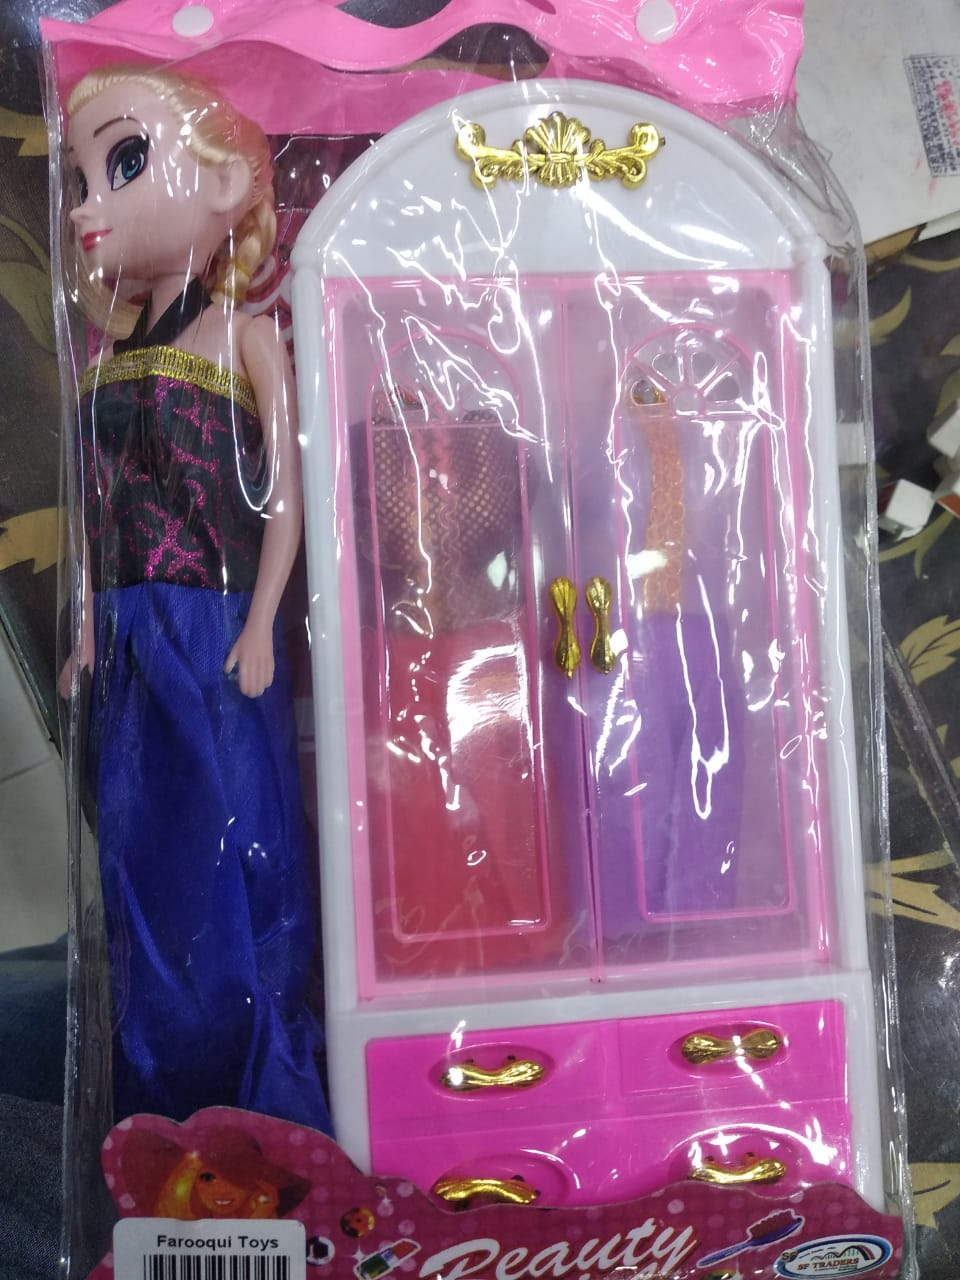 Doll Toys Gift Set For Girls with Almari and 2 Dresses